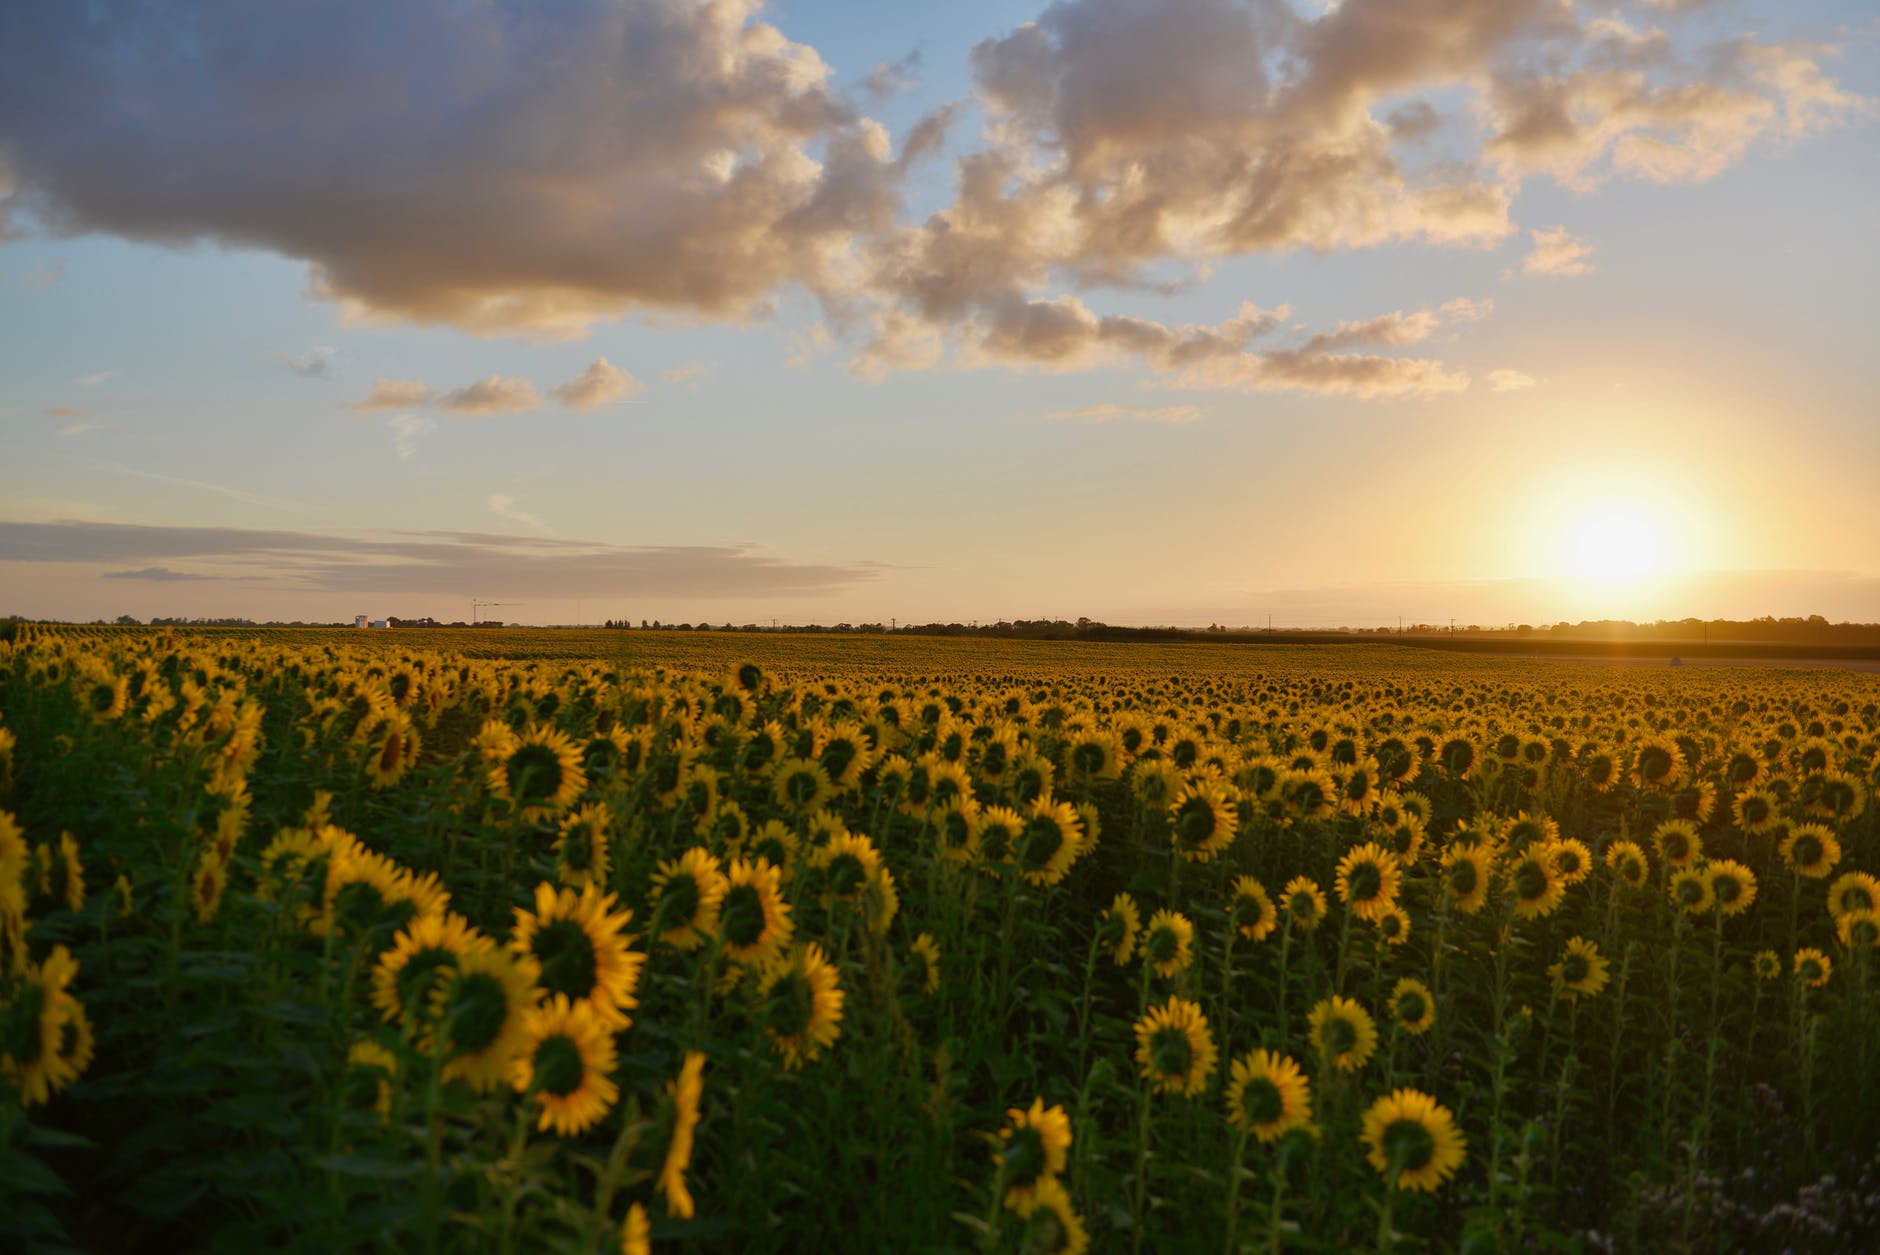 Sunflowers in a field all bending towards the sun